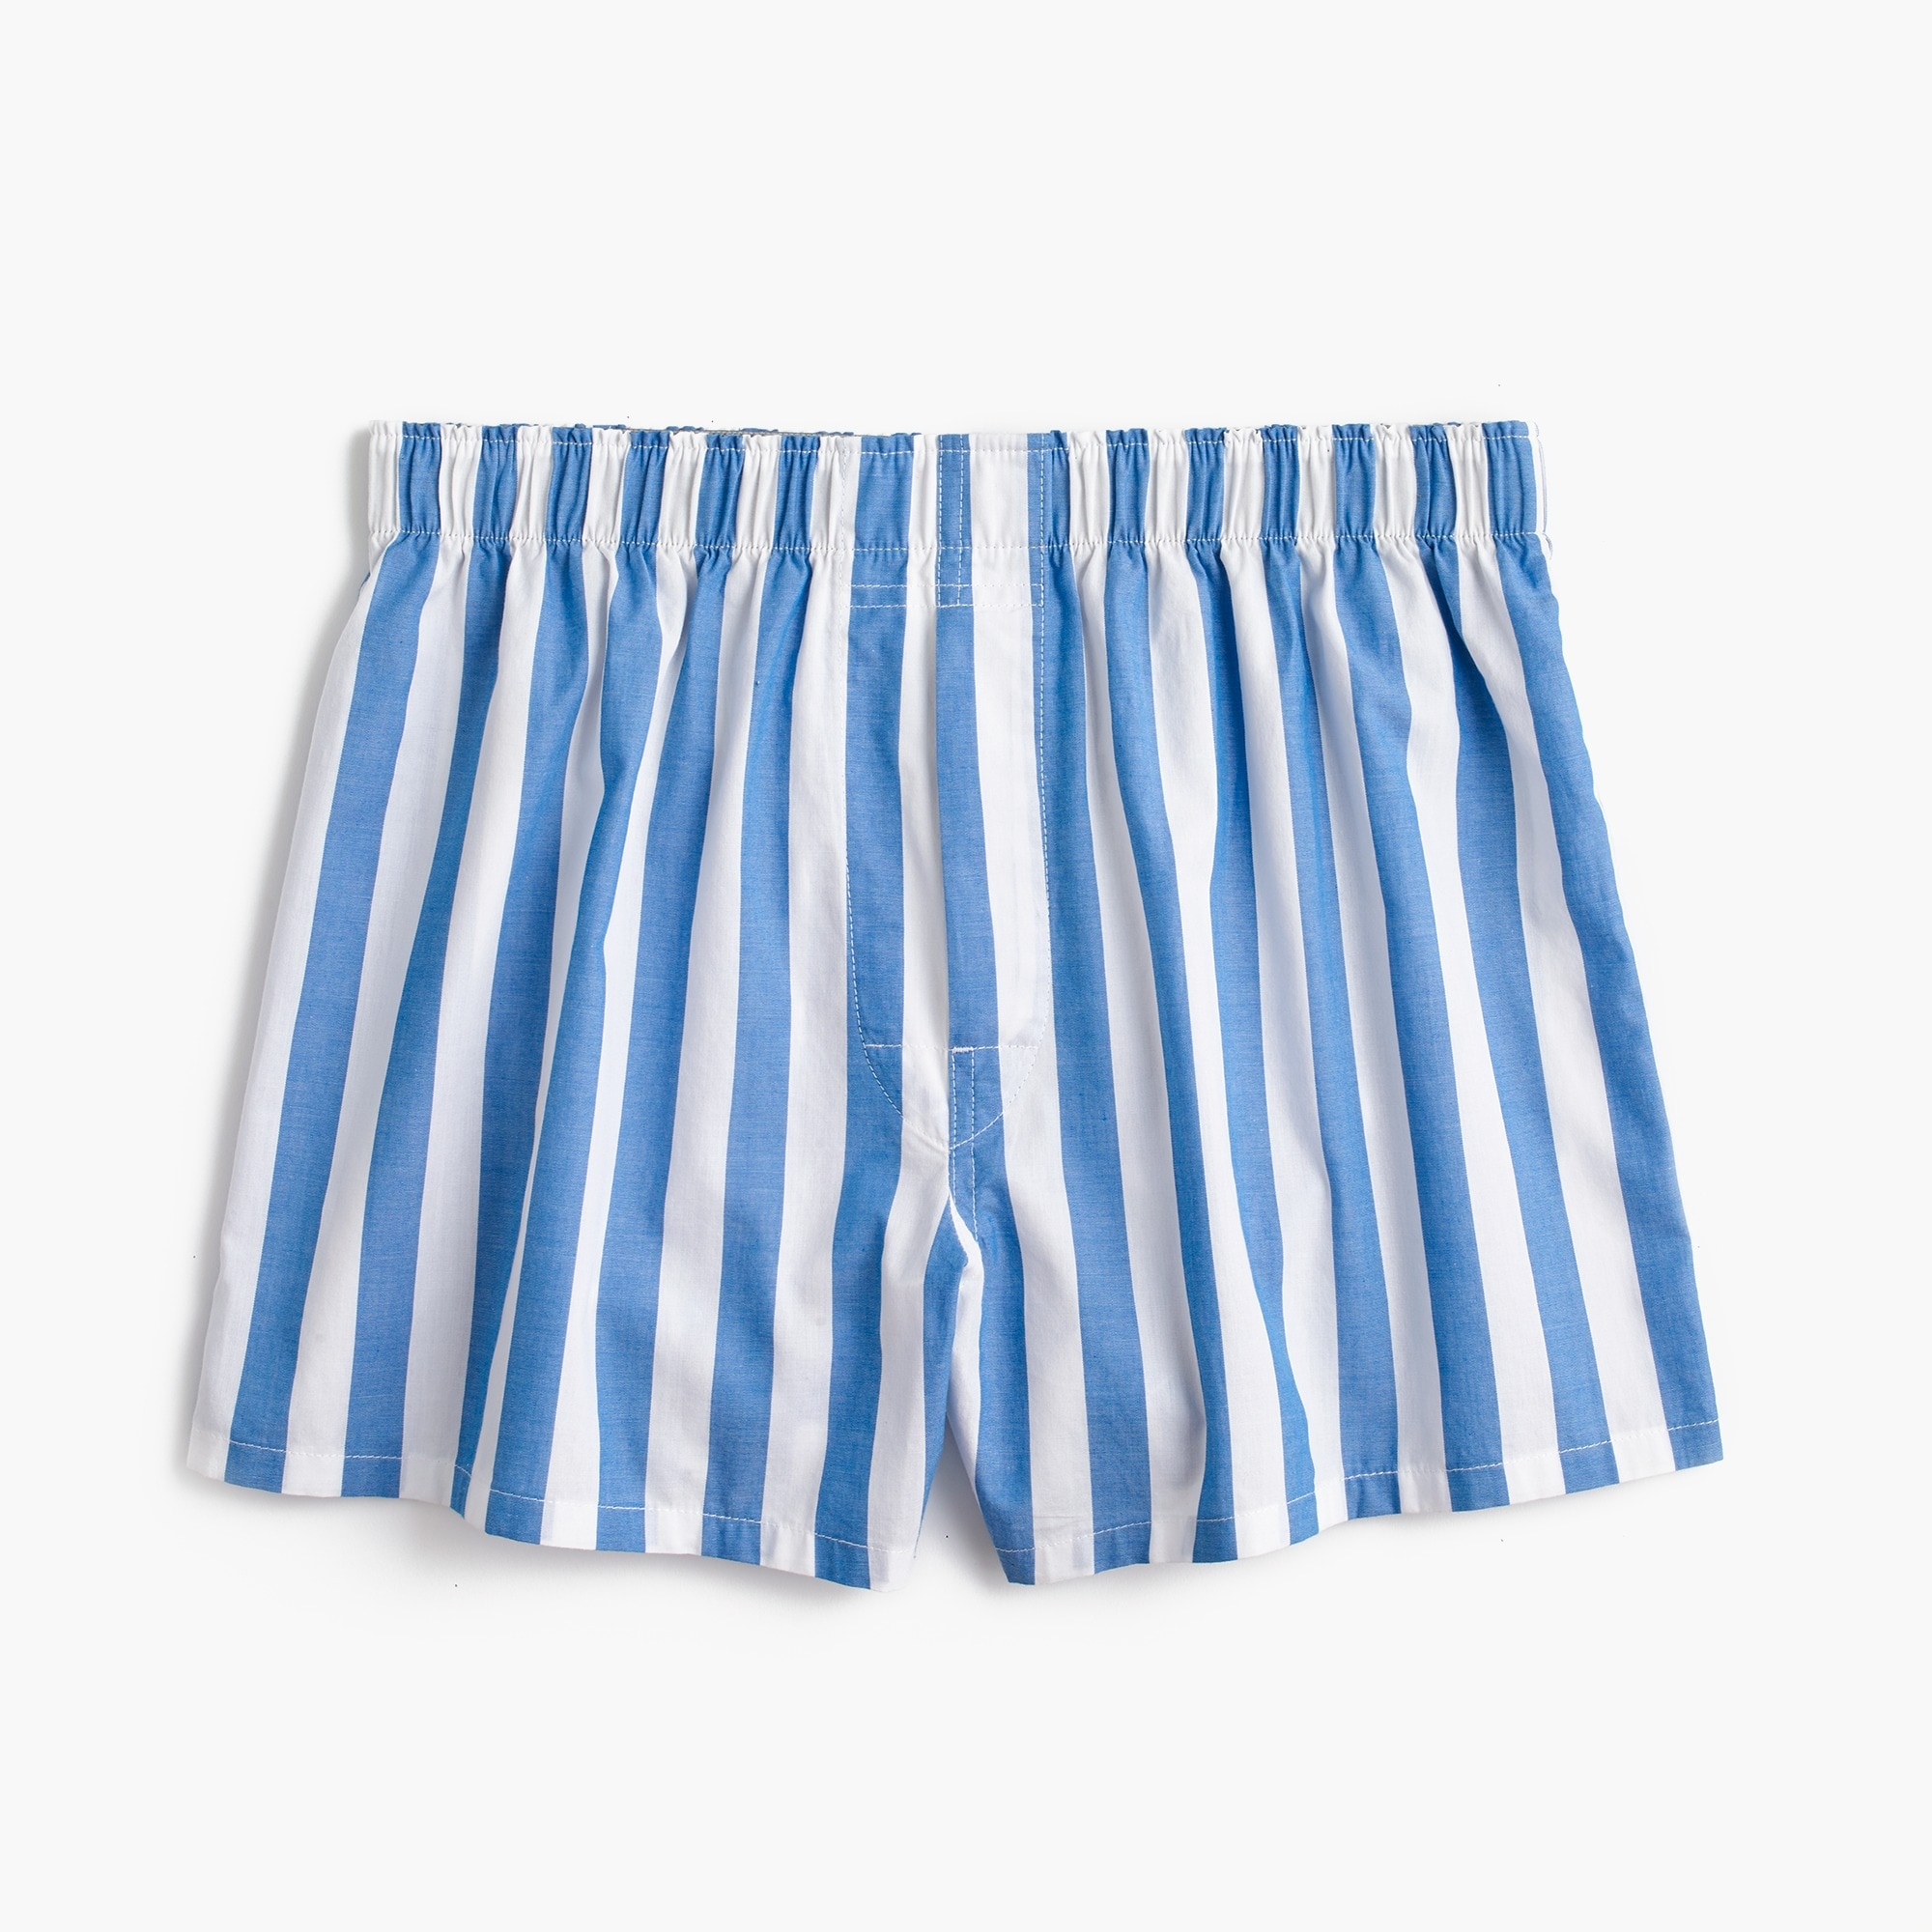 Seashore stripe boxers men underwear & pajamas c